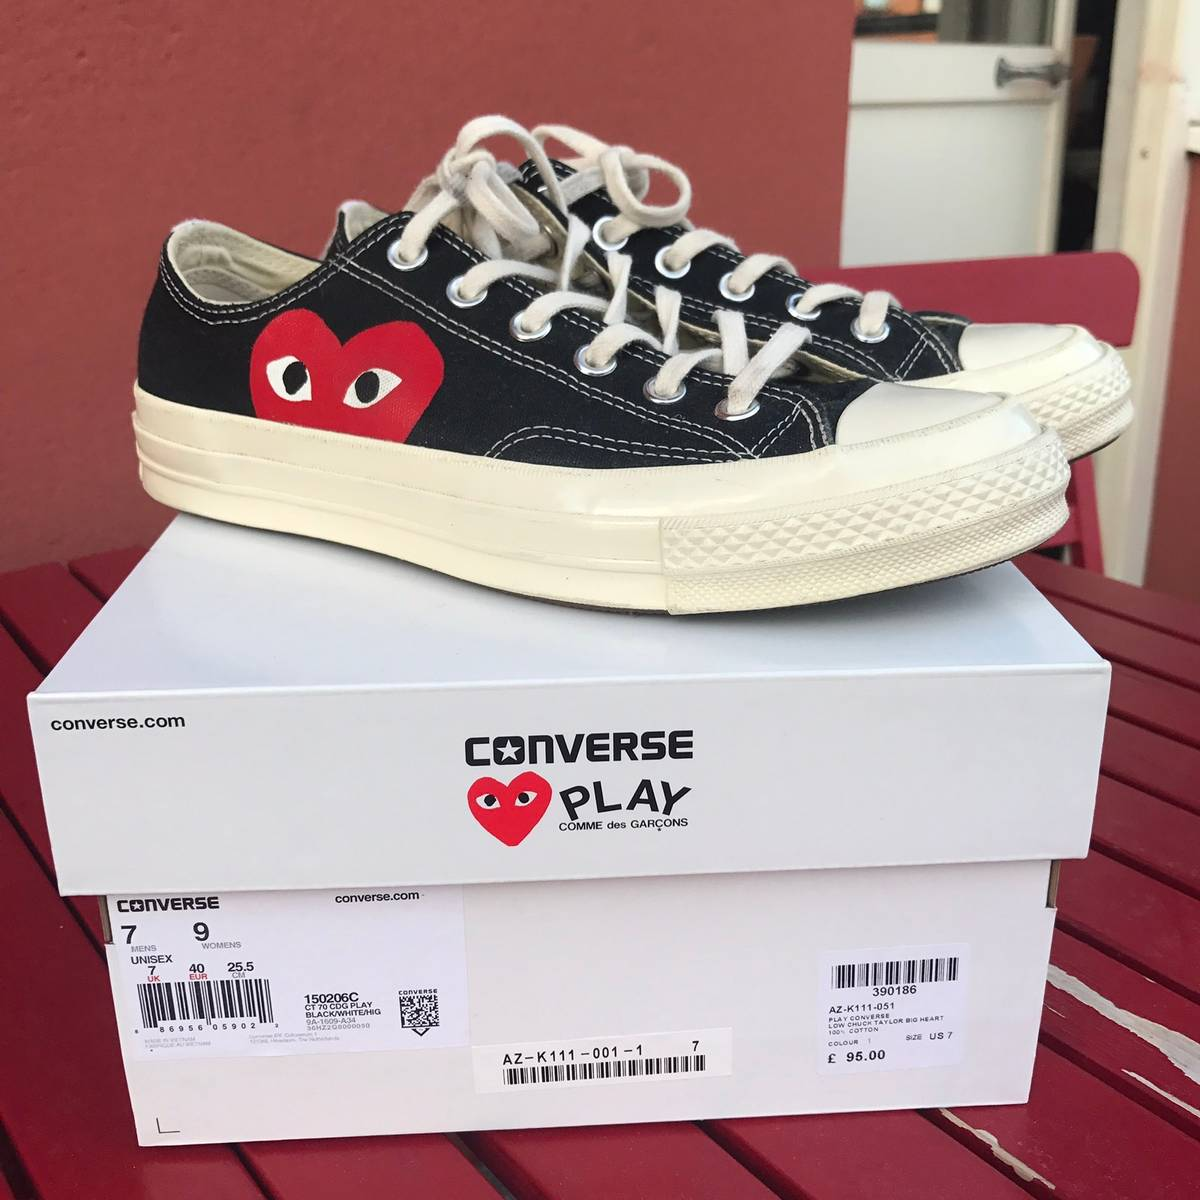 8e3f55cb527125 Converse CDG Play Converse Low Chuck Taylor Big Heart Black Size 7 -  Low-Top Sneakers for Sale - Grailed